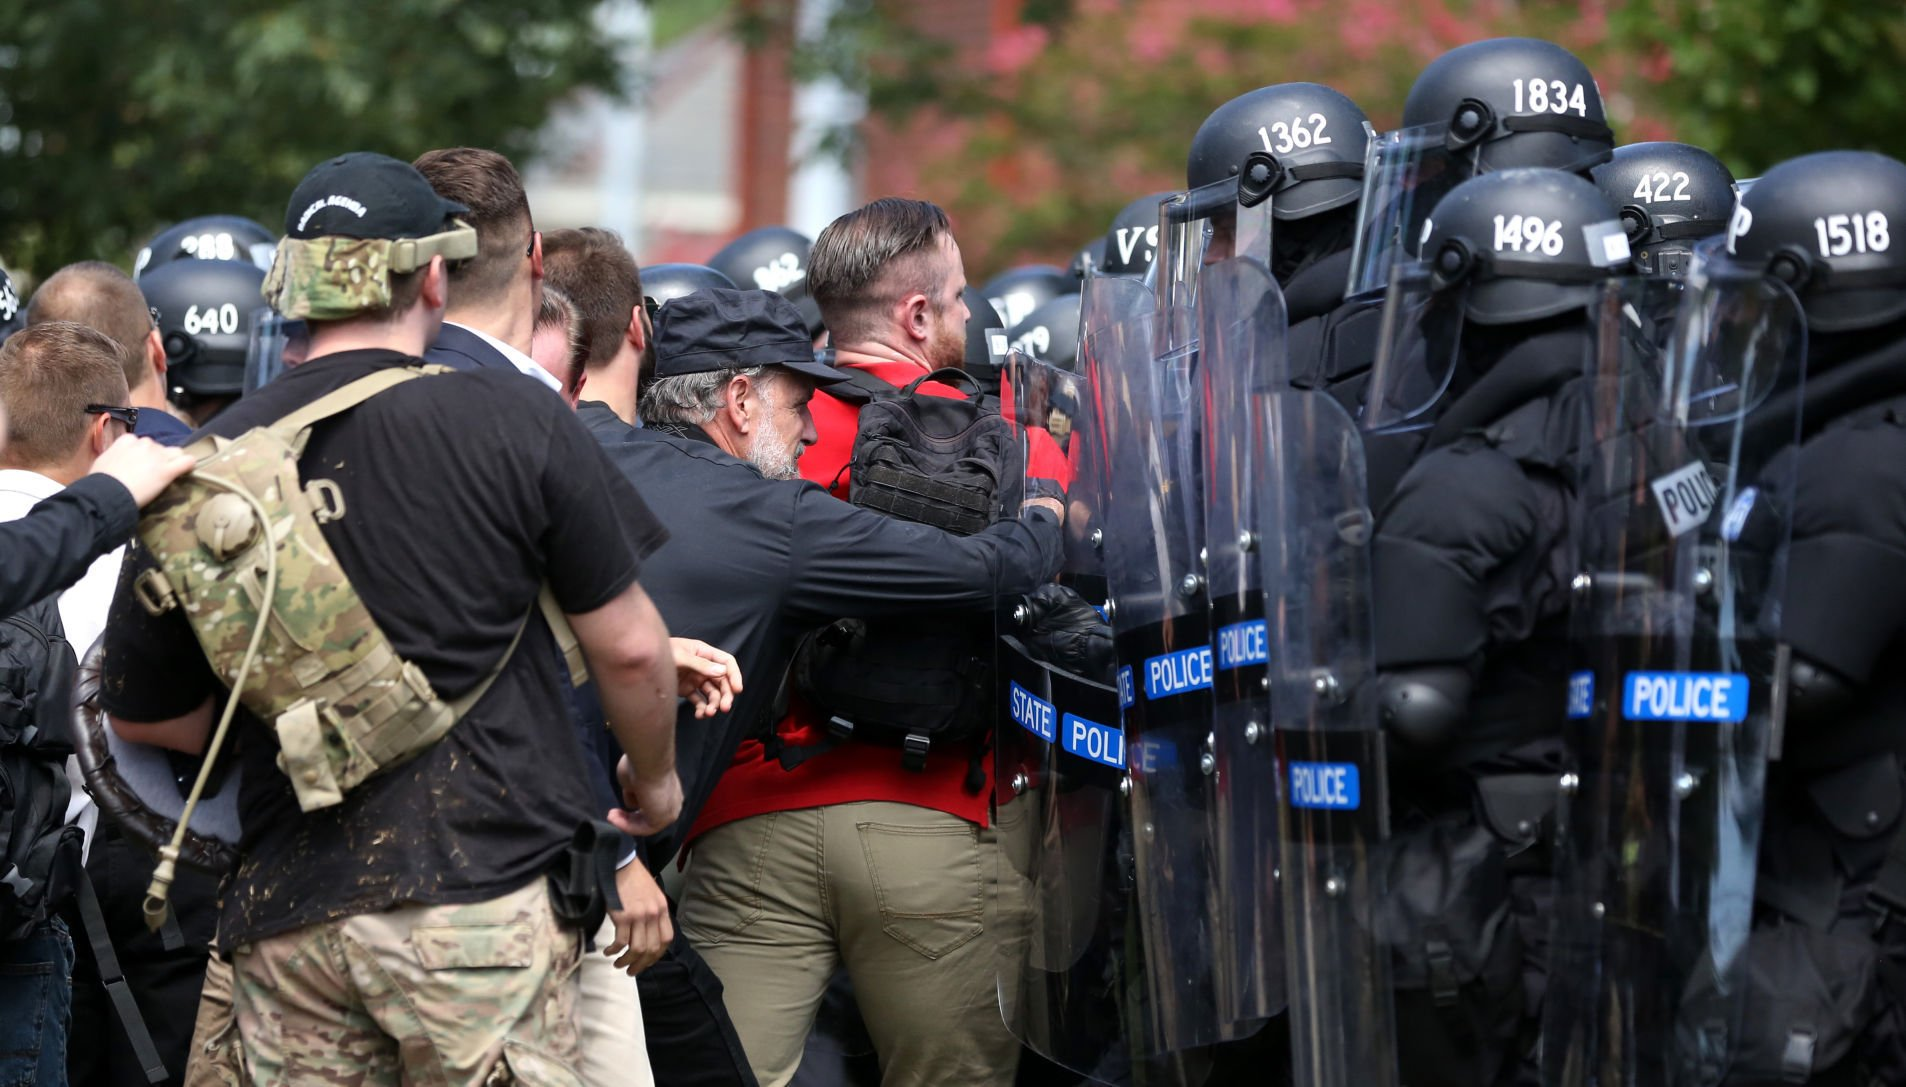 Charlottesville white nationalist who cried on camera is about to get arrested